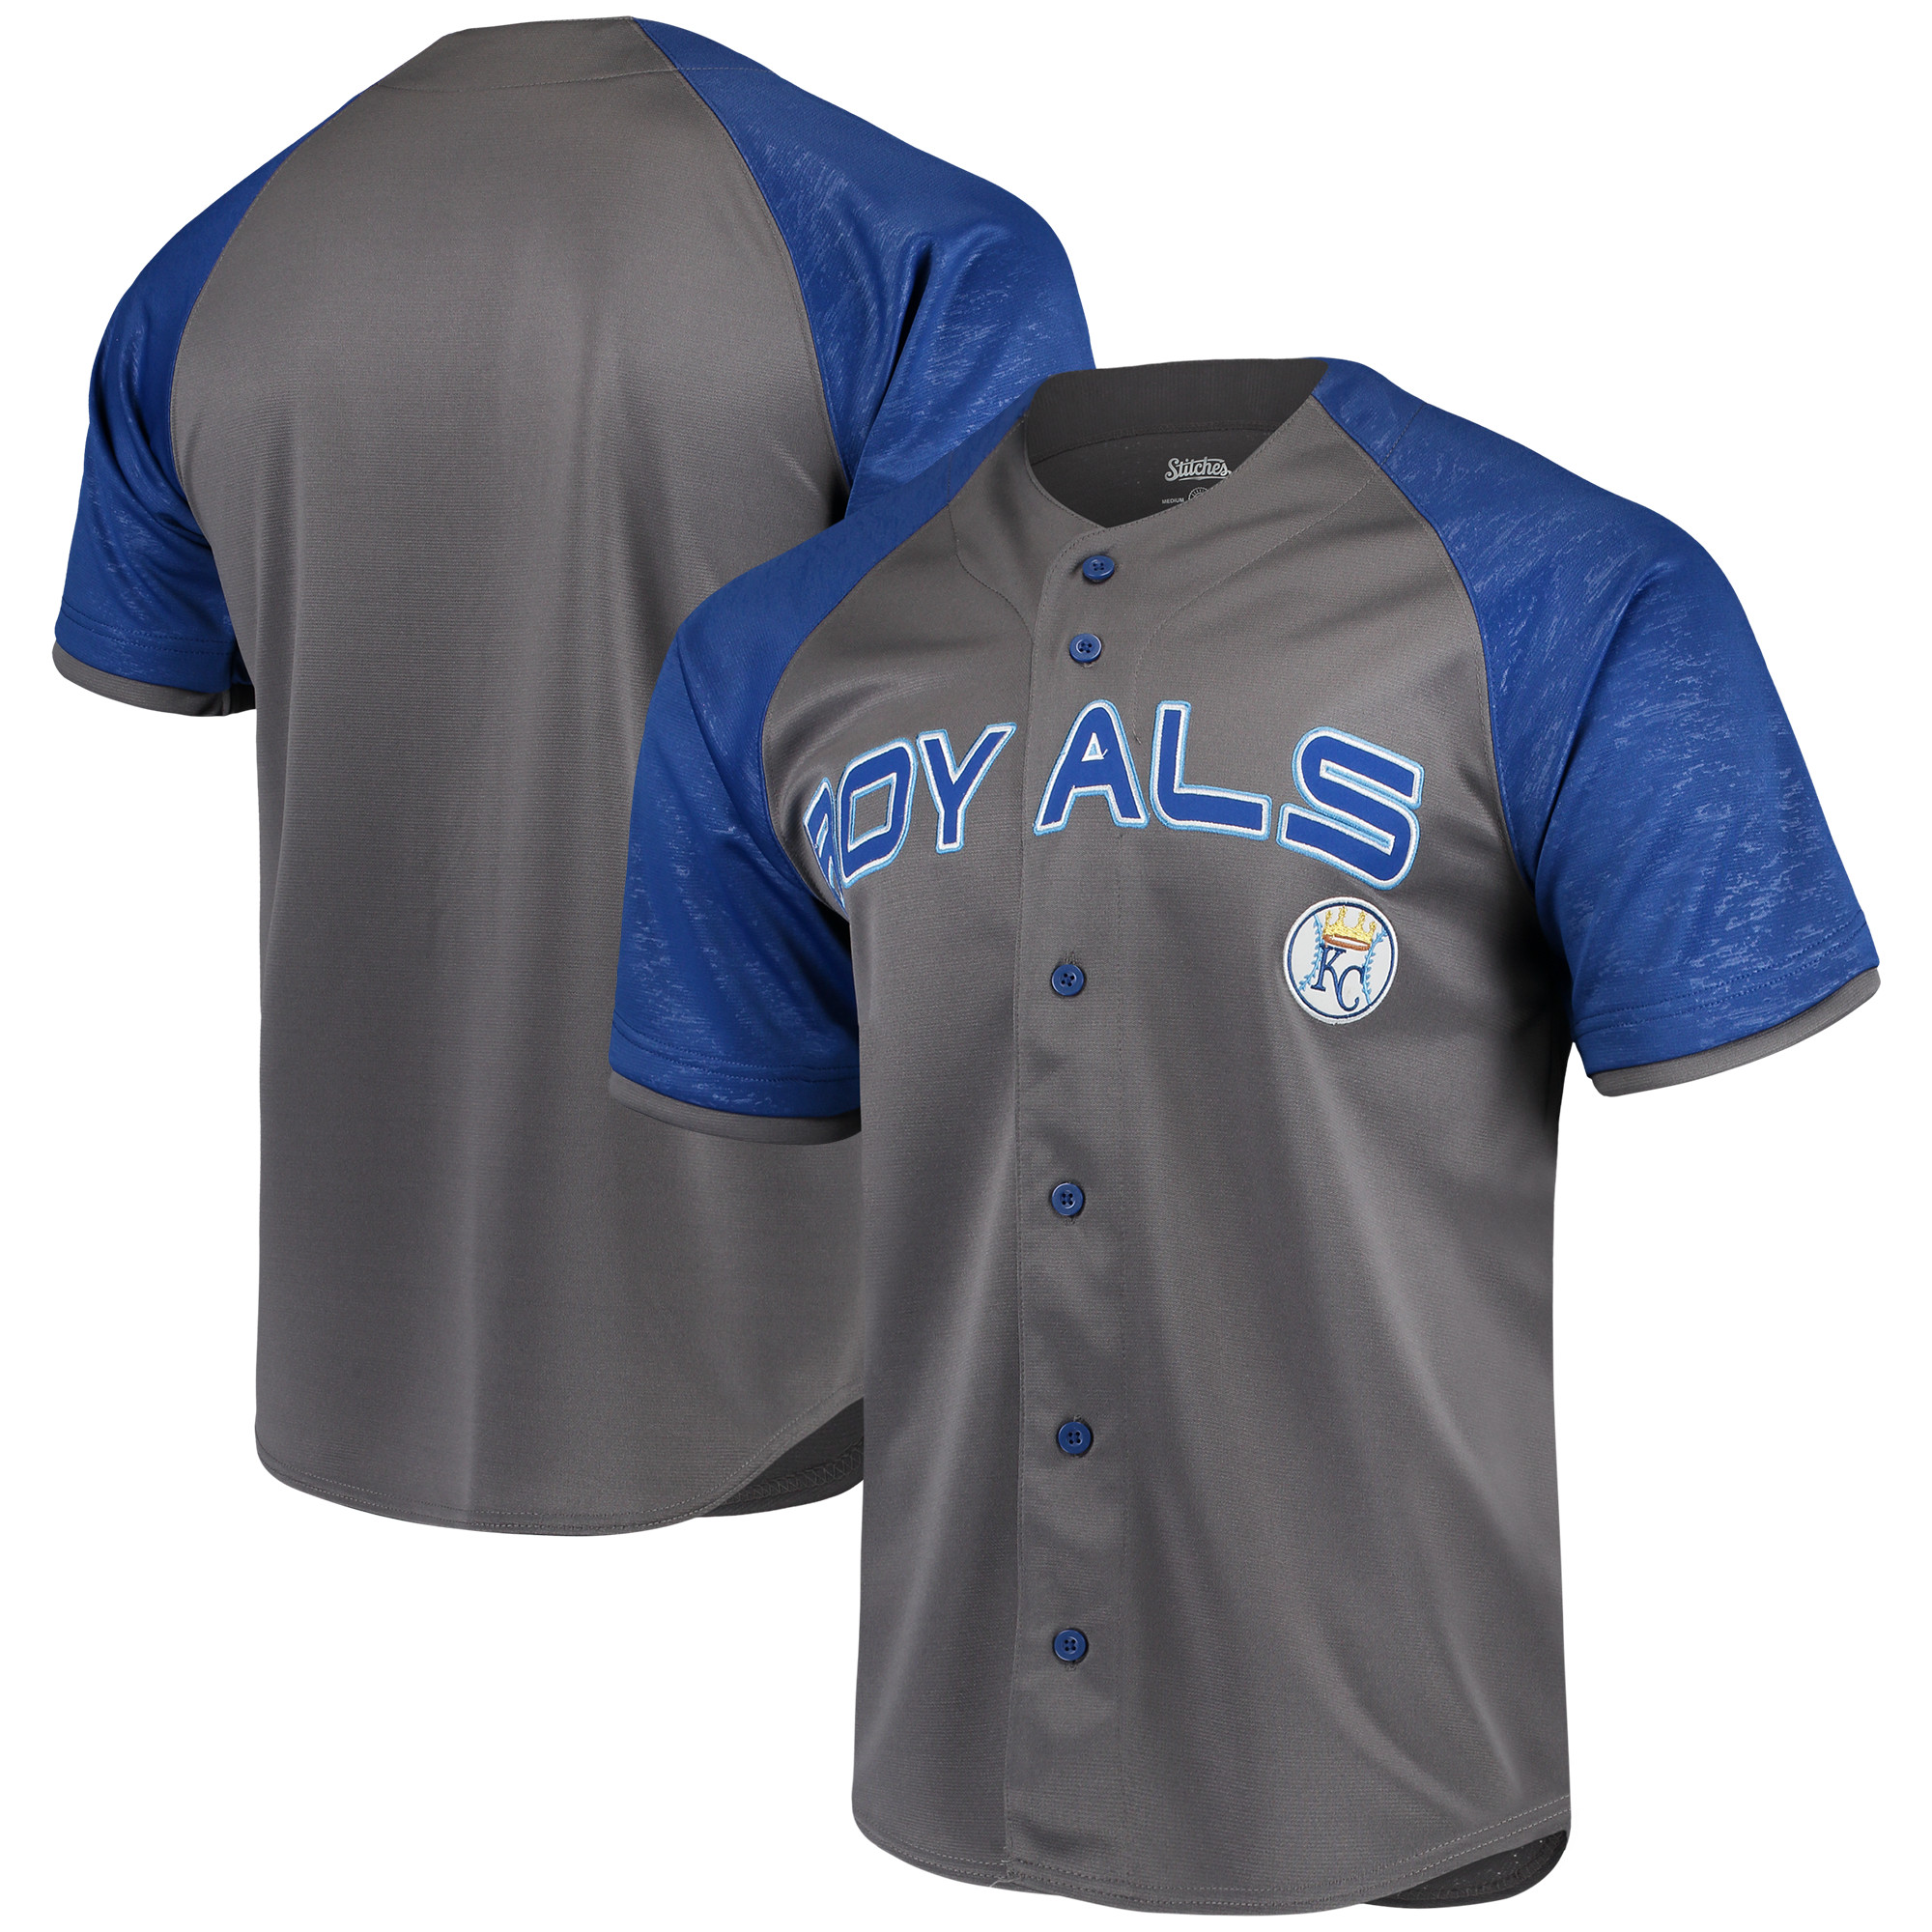 Kansas City Royals Stitches Glitch Jersey - Charcoal/Royal